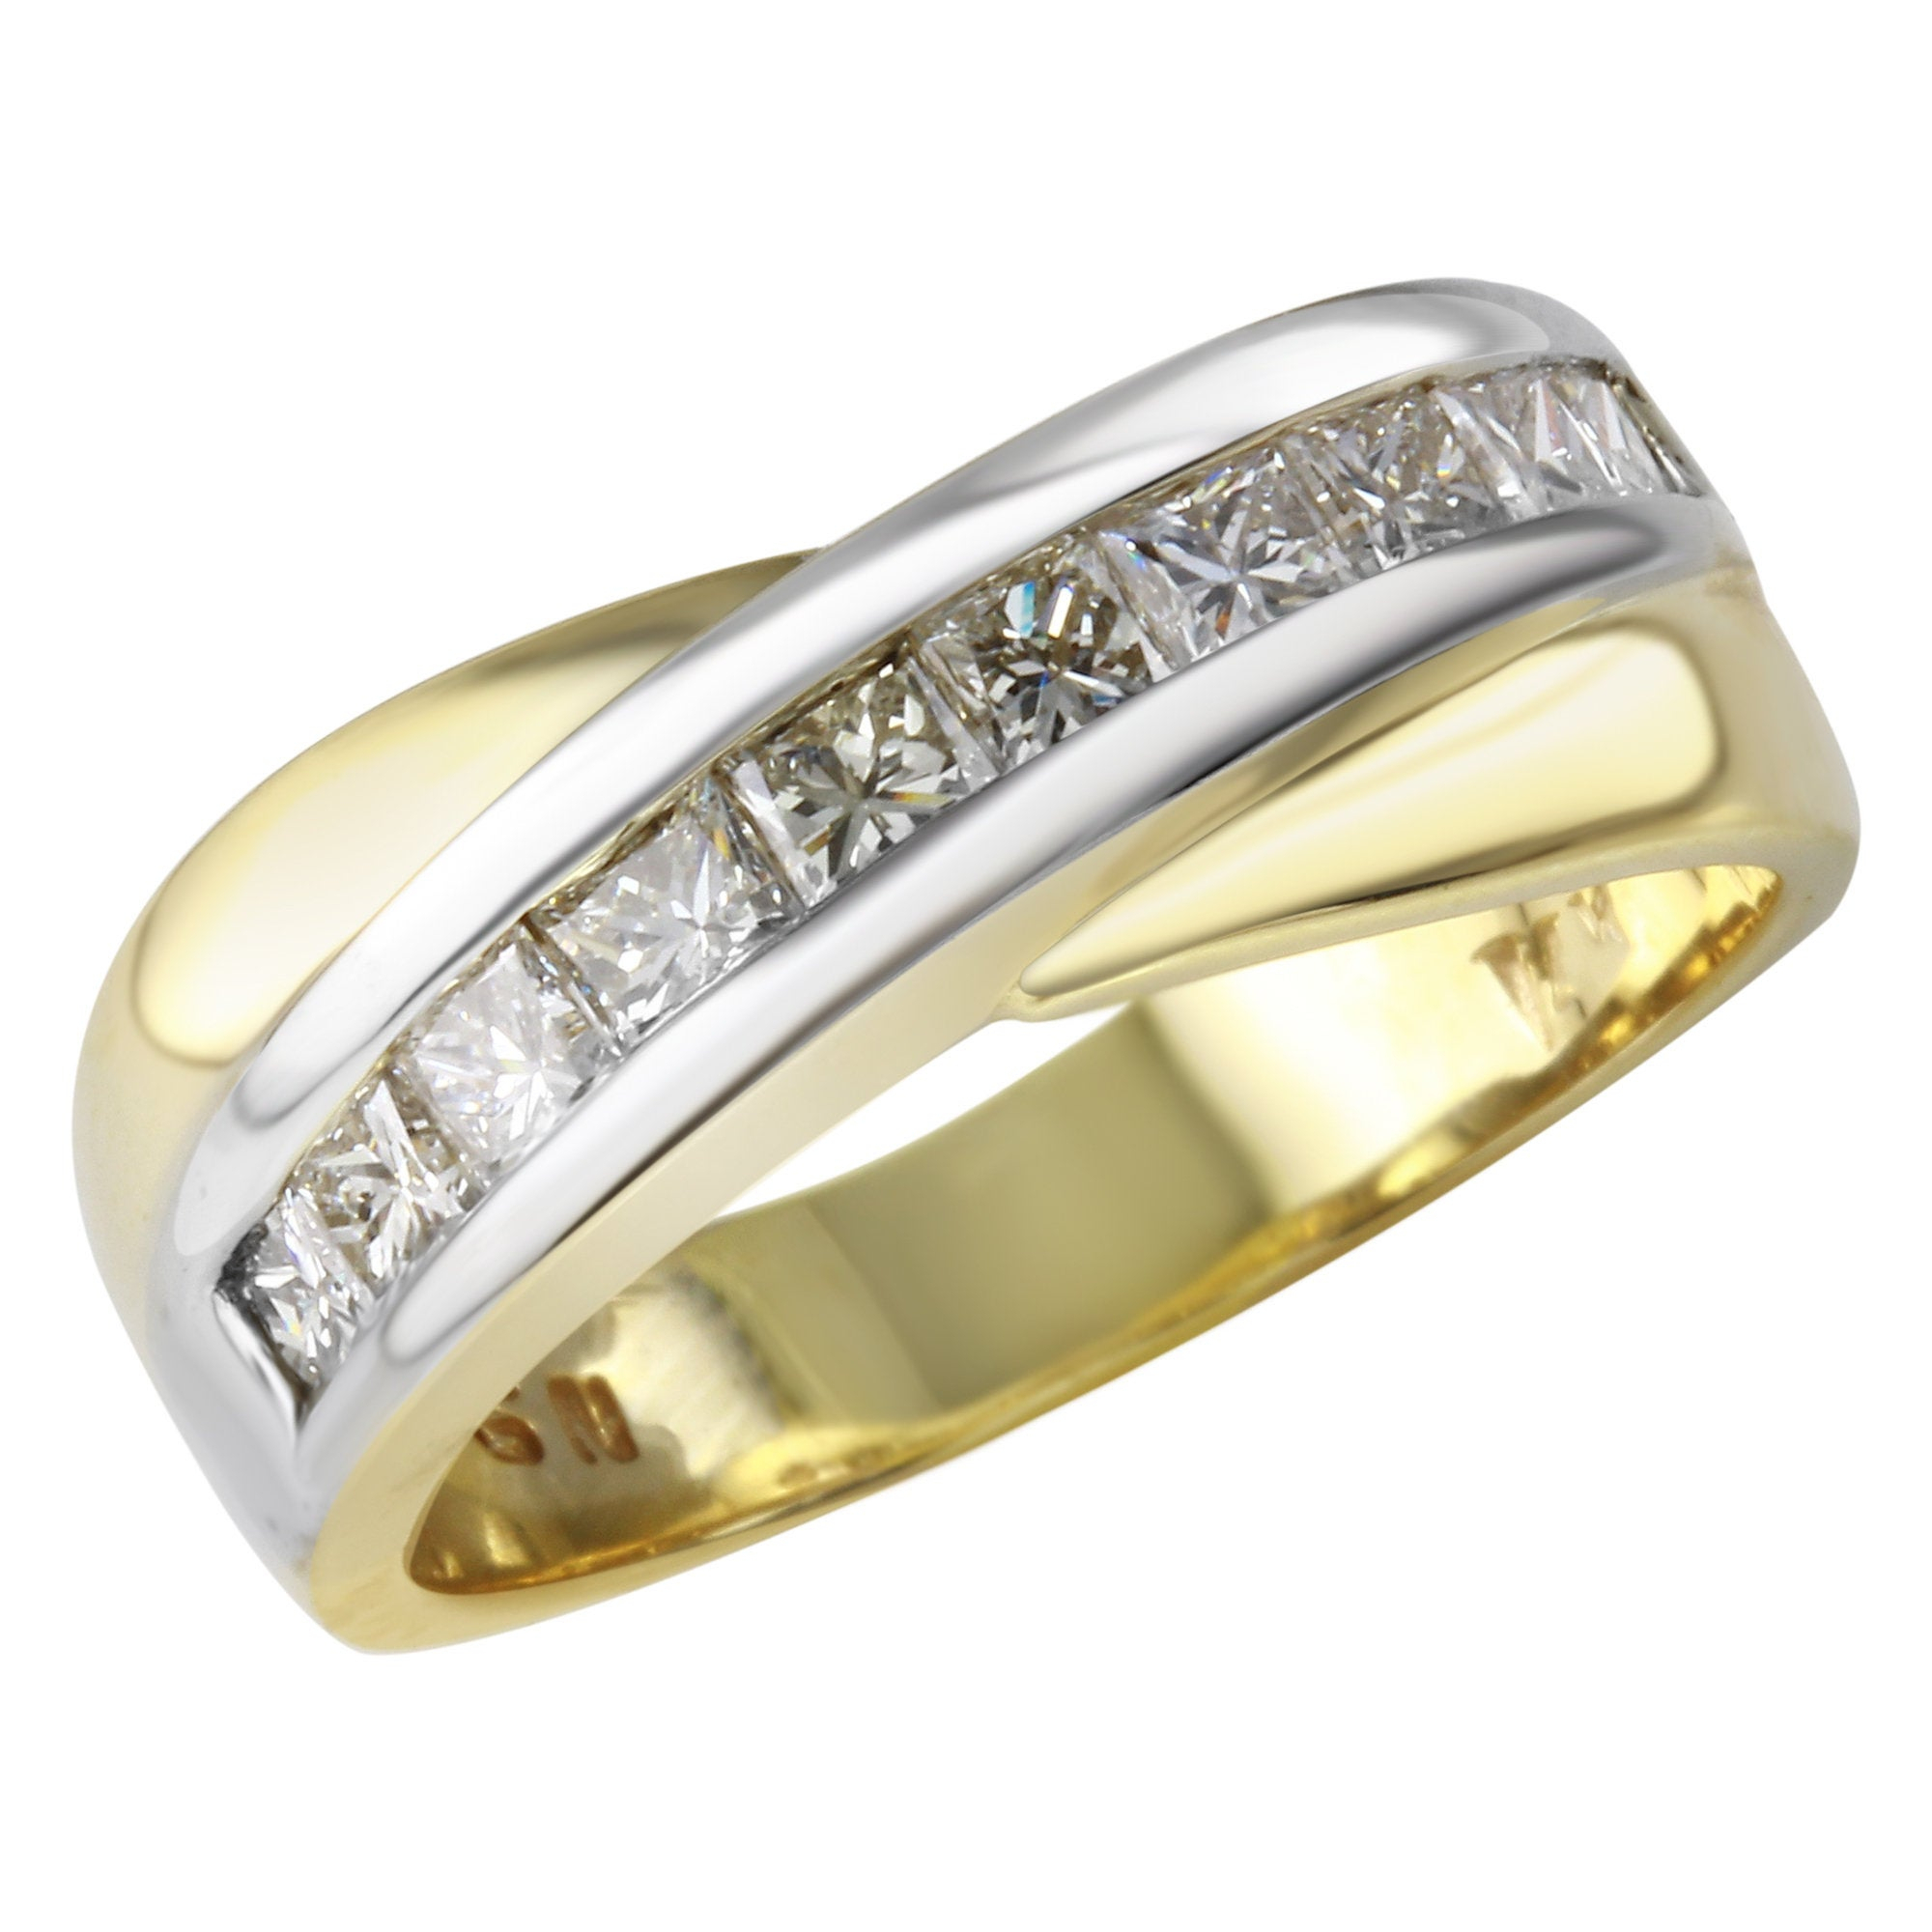 Women's Channel Set Anniversary Band Ring In 14K Yellow And White Gold With  Princess Cut Diamonds Regarding 2020 Diamond Channel Set Anniversary Bands In Gold (View 25 of 25)